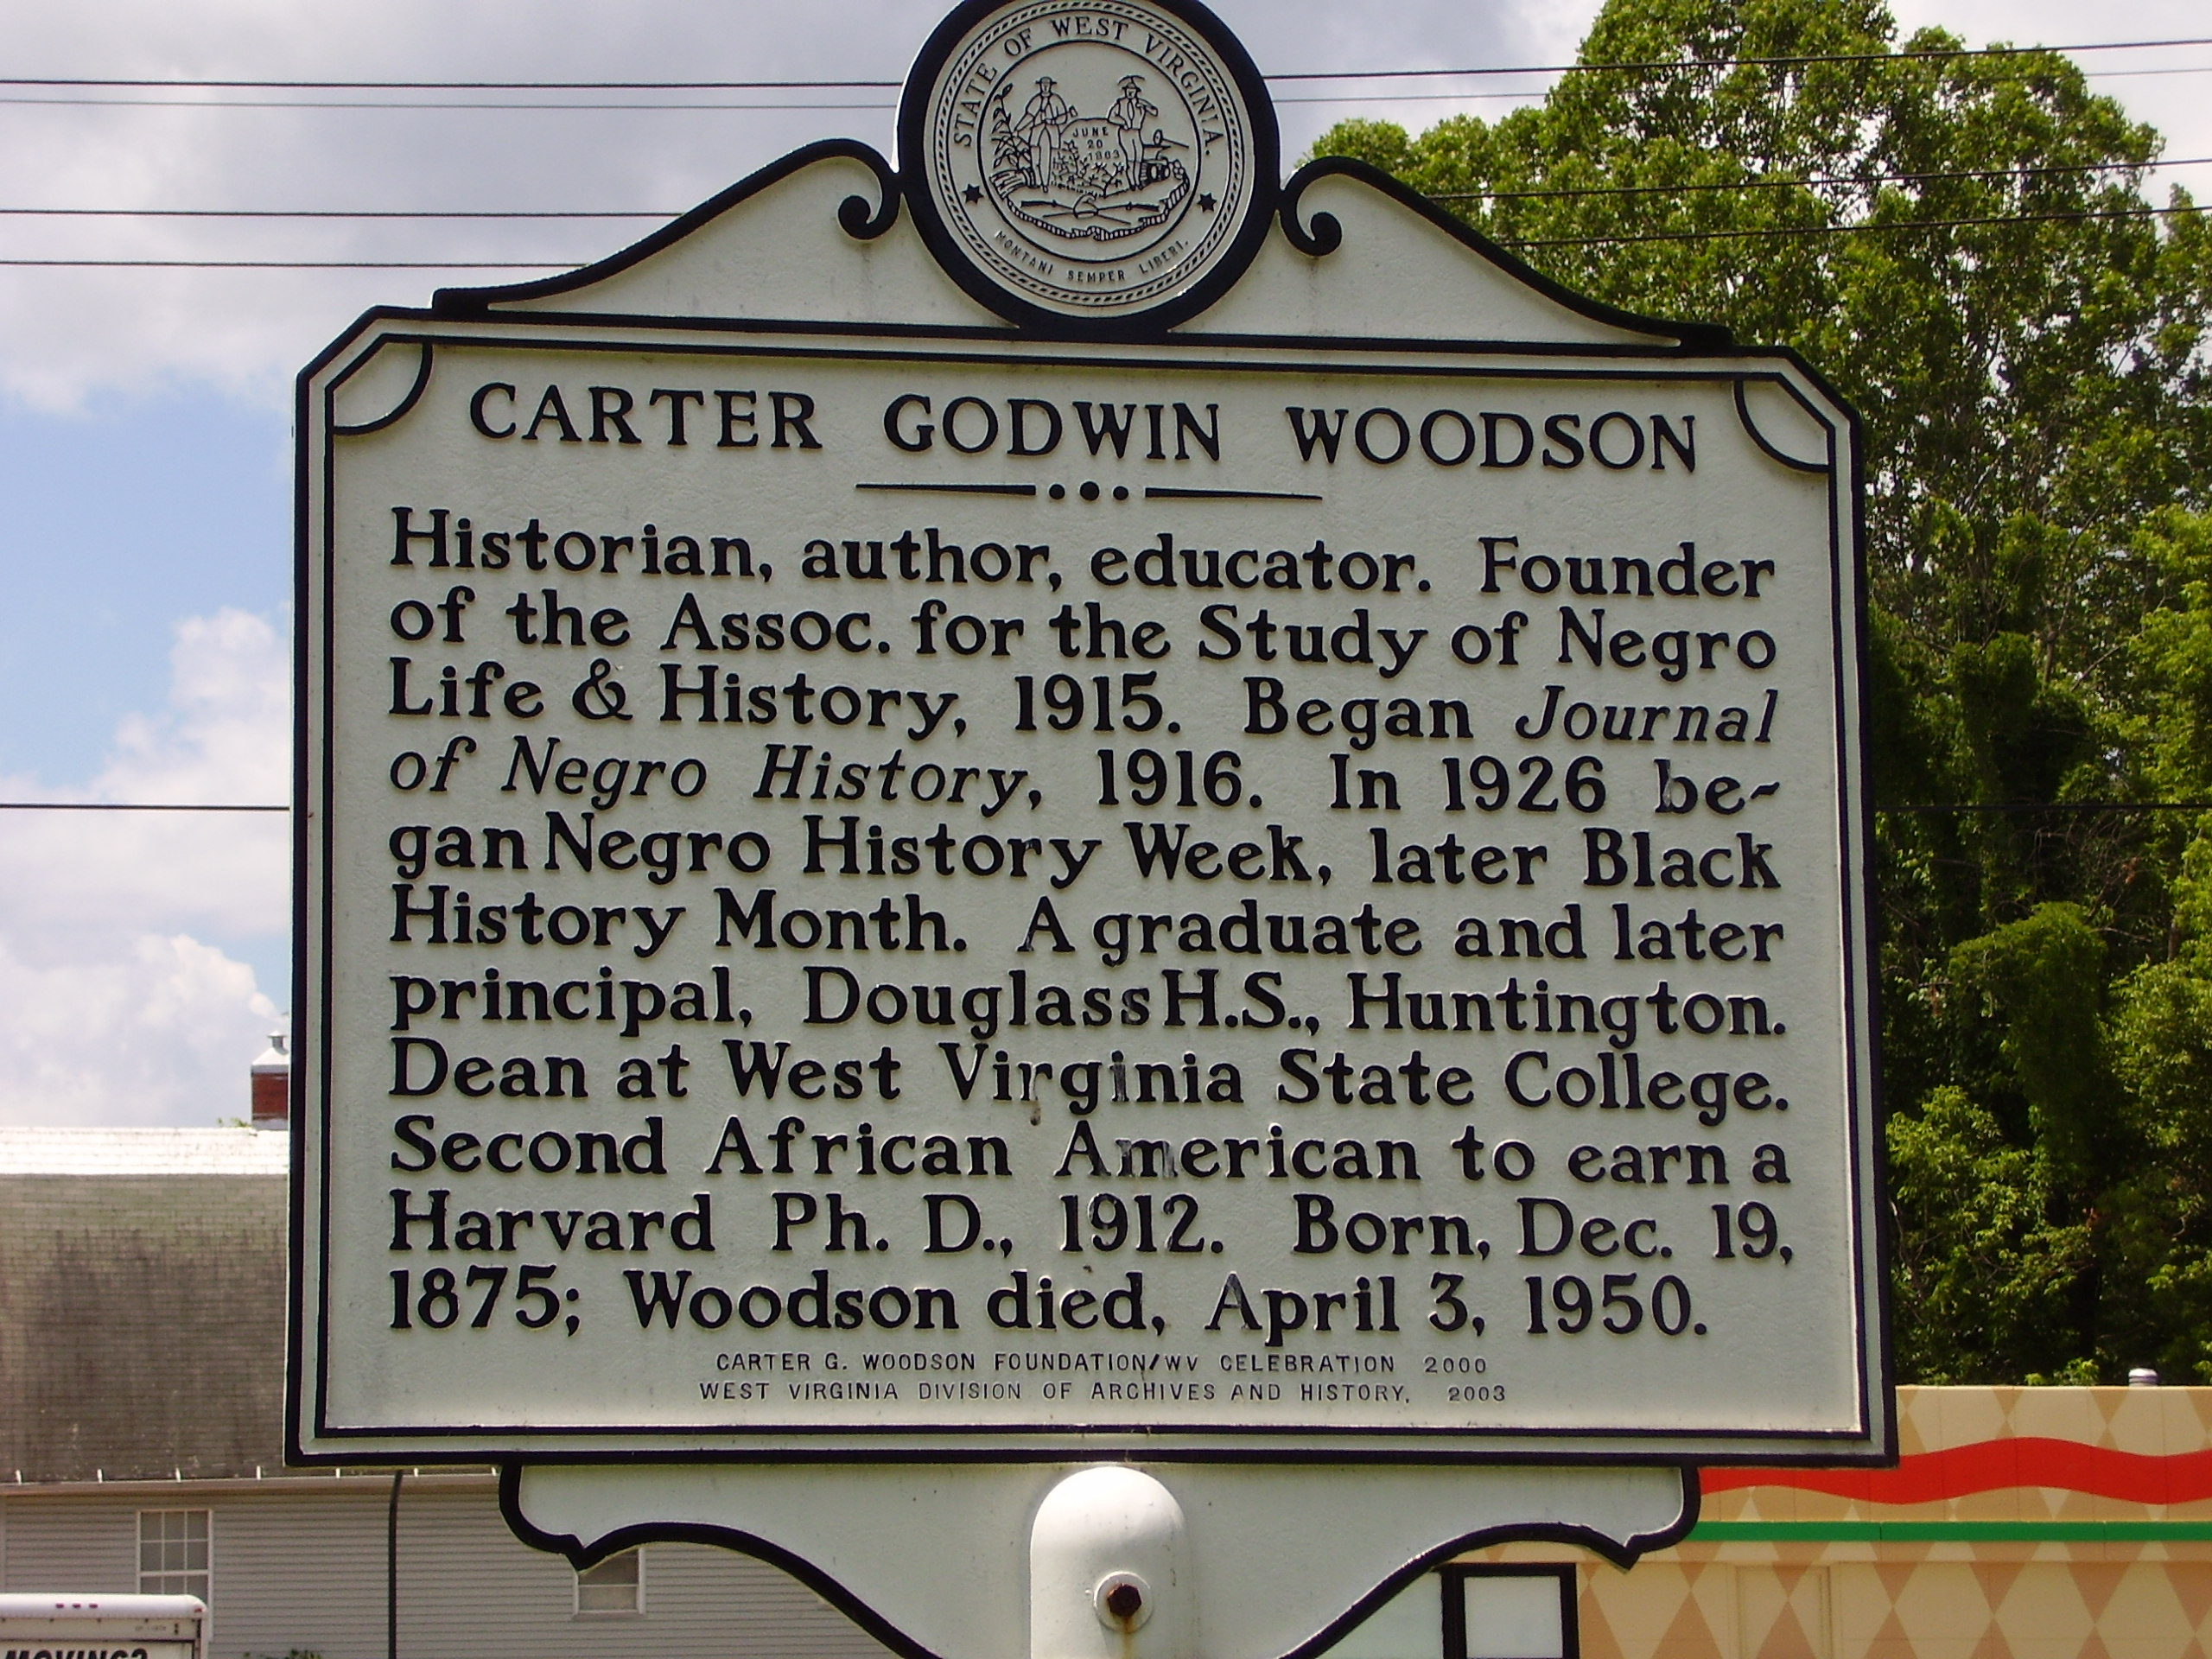 the early life story of dr carter g woodson and his life achievements These are the words of dr carter godwin woodson carter g woodson credits his father for influencing the course of his life his father.